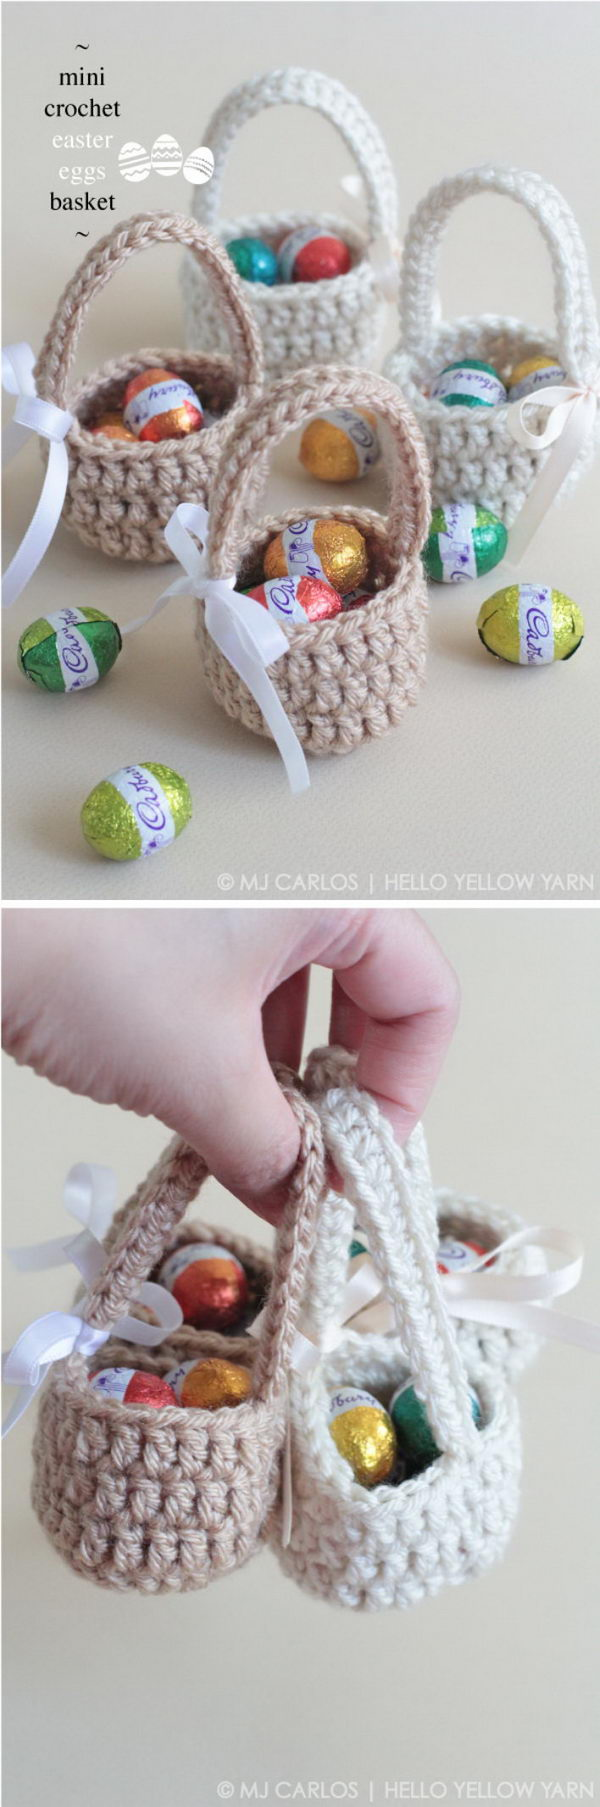 Mini Crochet Easter Eggs Basket.